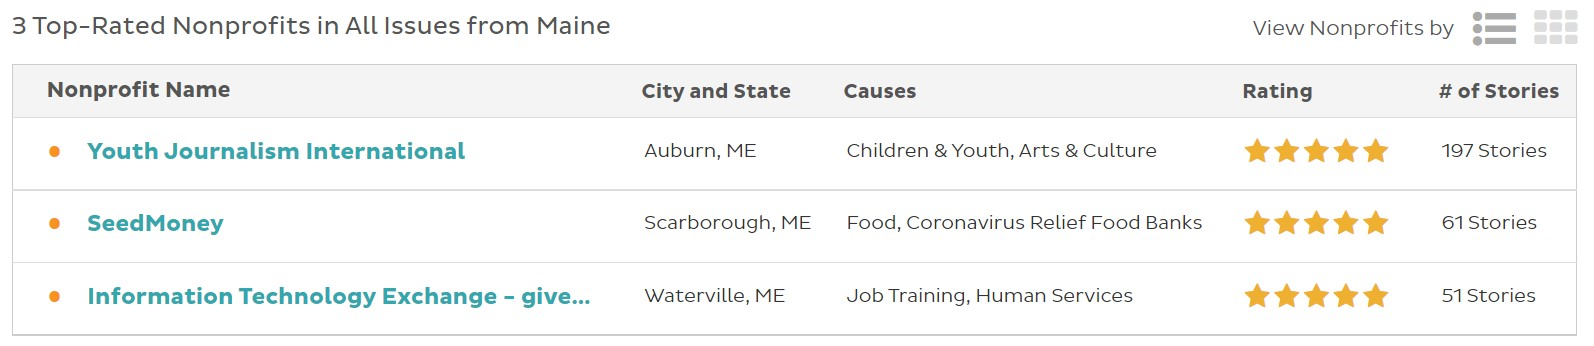 Maine Top Rated Great Nonprofits